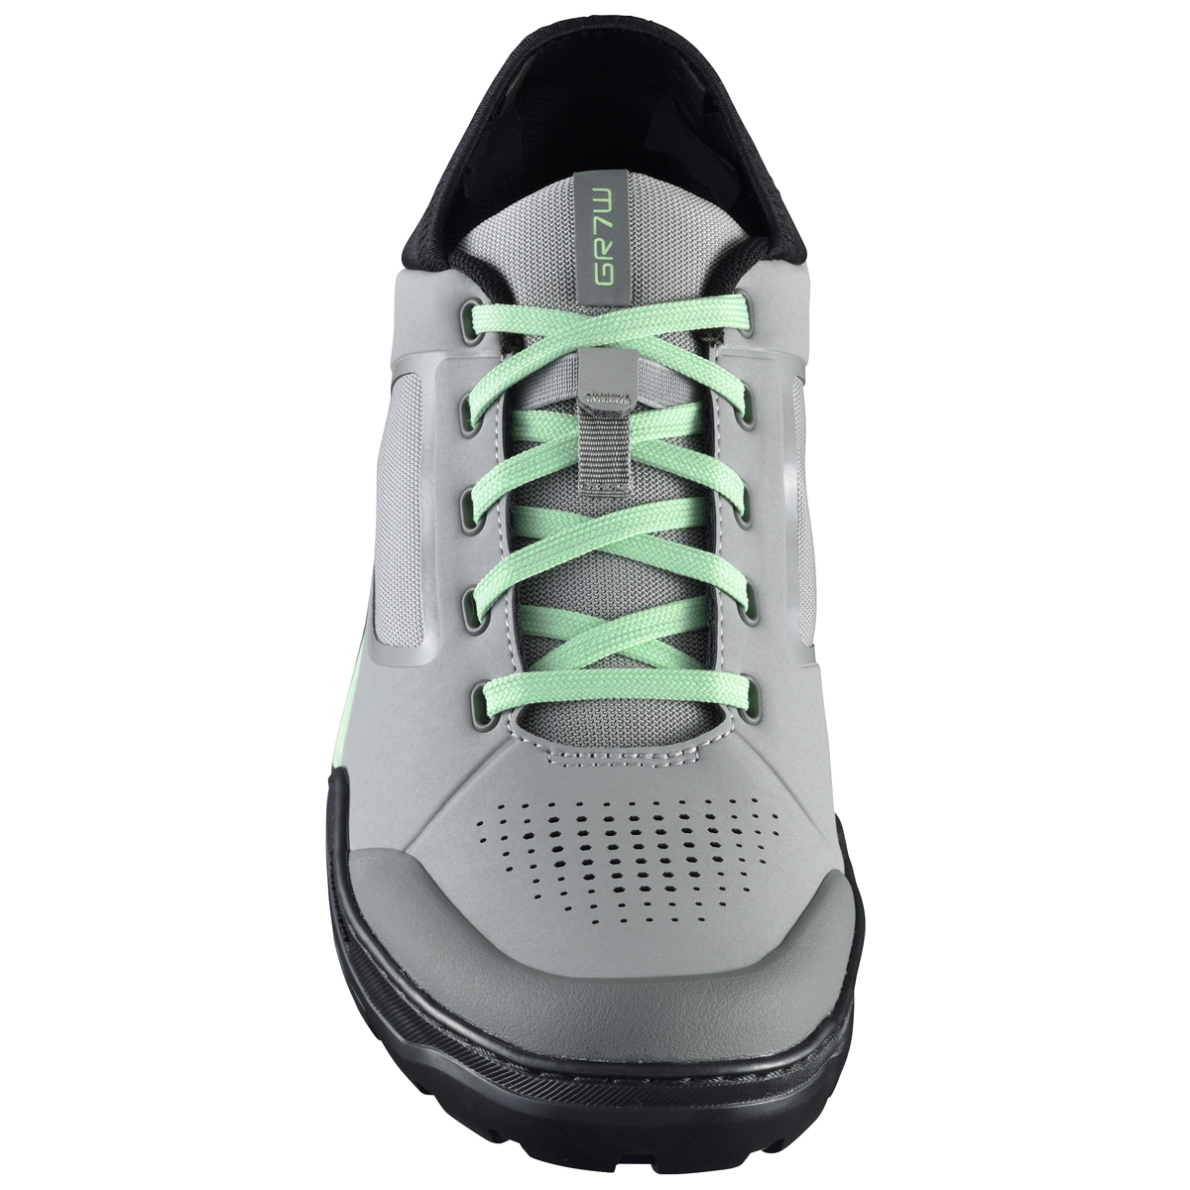 Bicycle Shoes SH-GR700WG 44.0